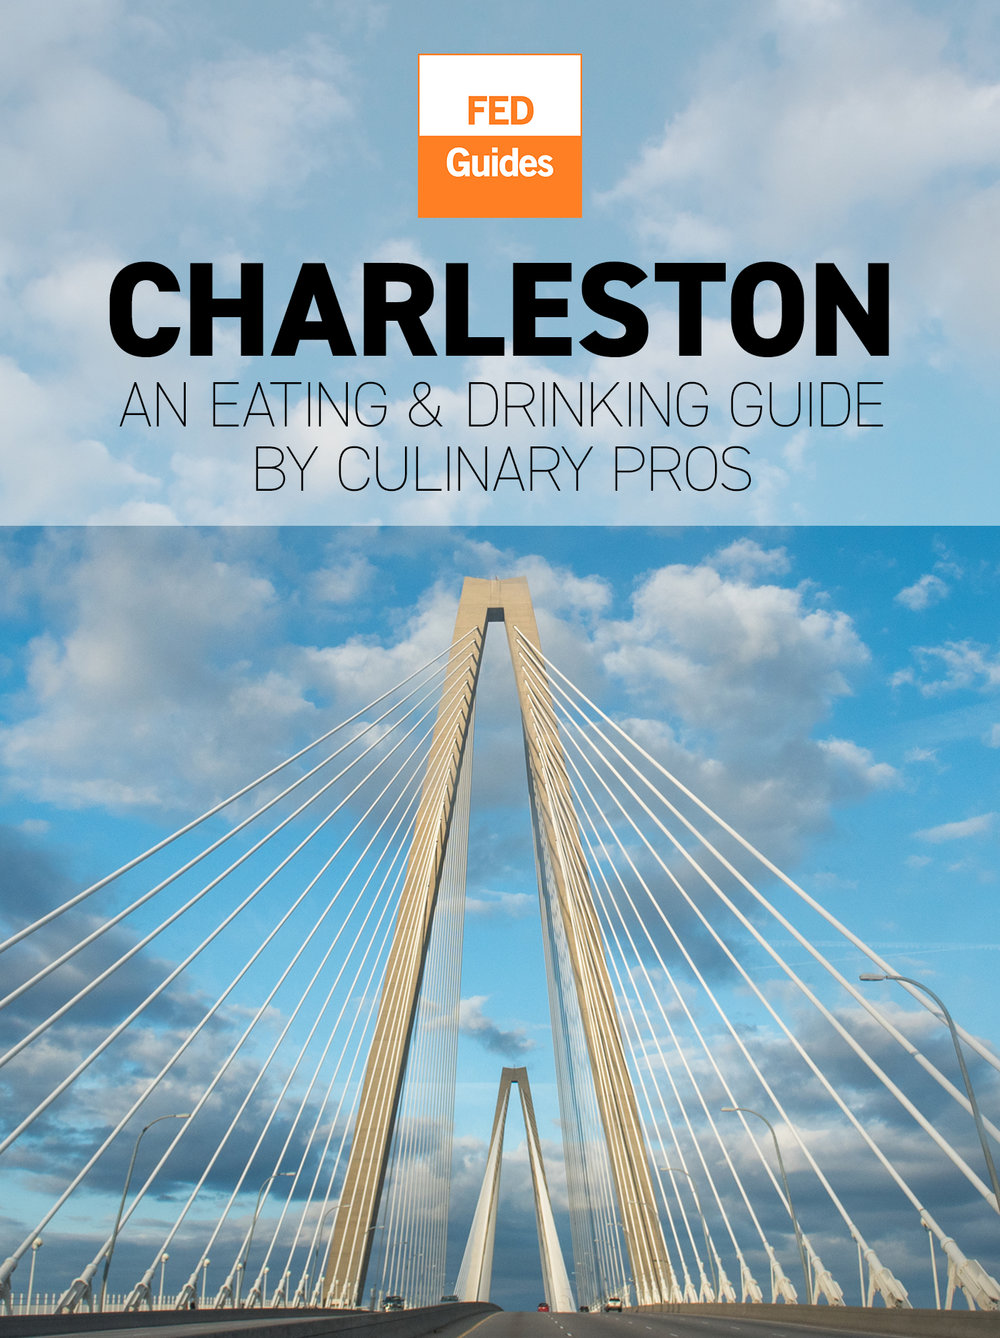 USA_FL_Charleston_eBook_Apple_Cover_v1.2.jpg